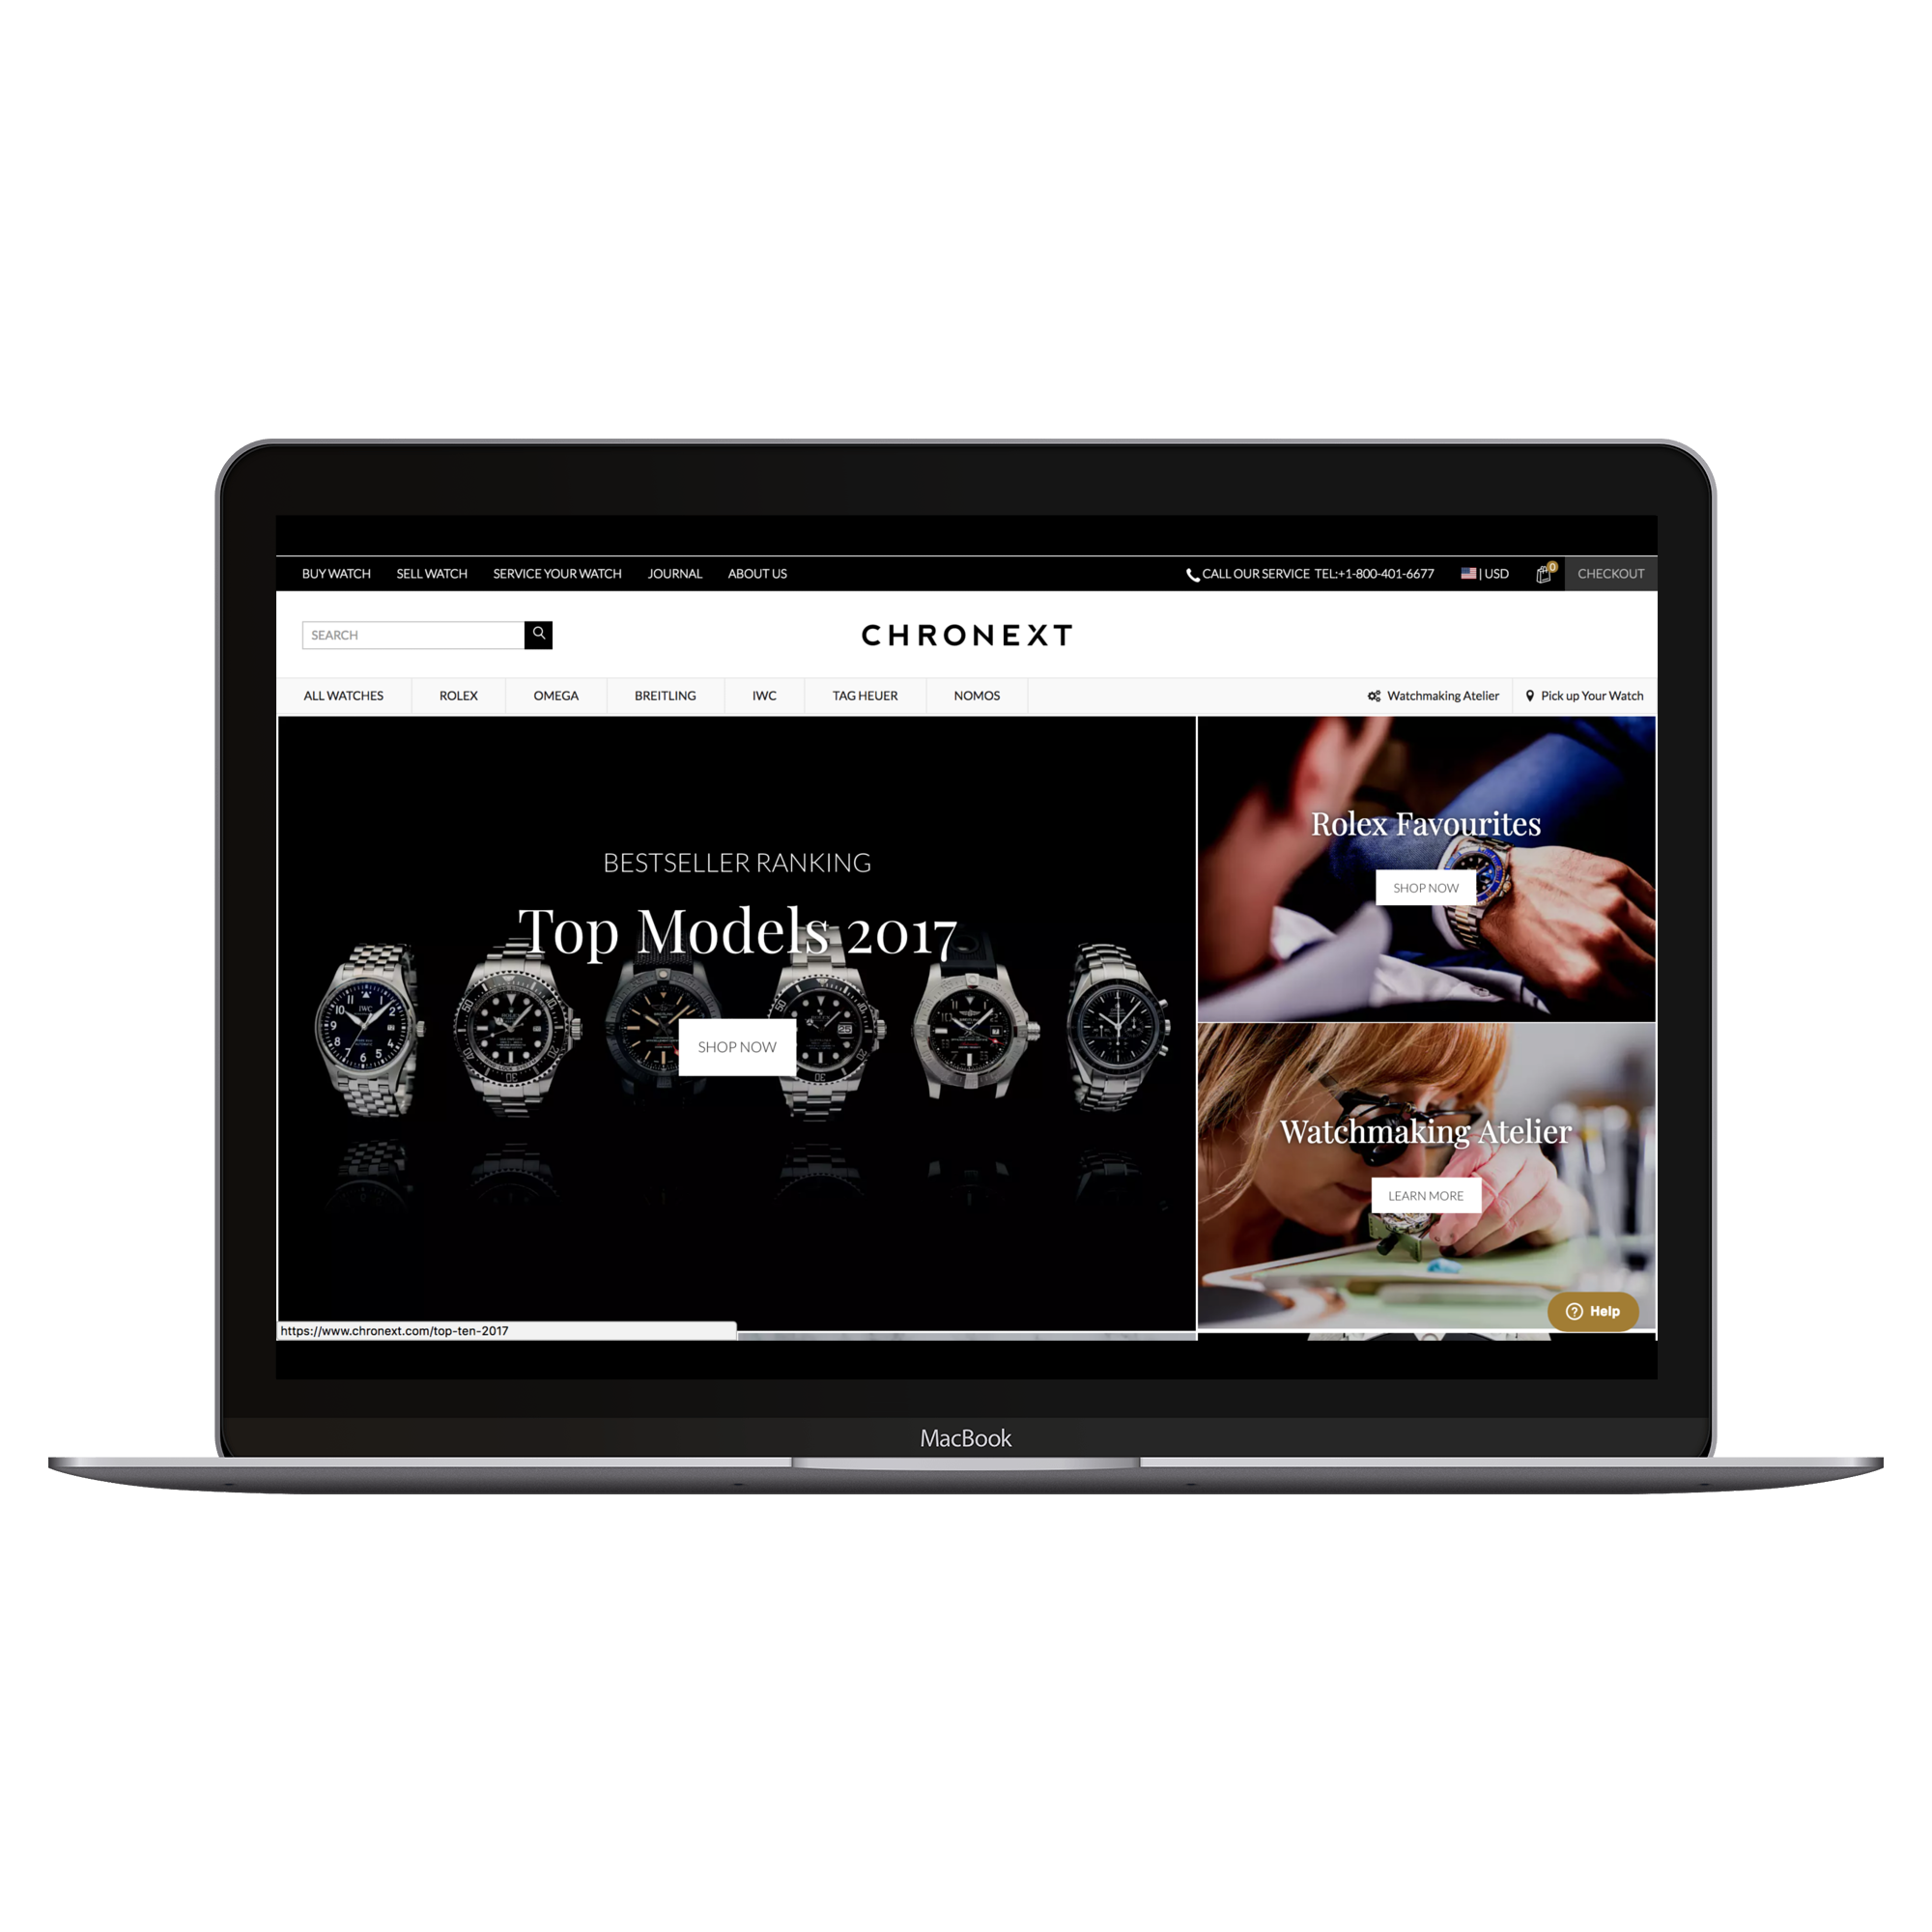 Chronext raises $34 million to bring nice watches to your